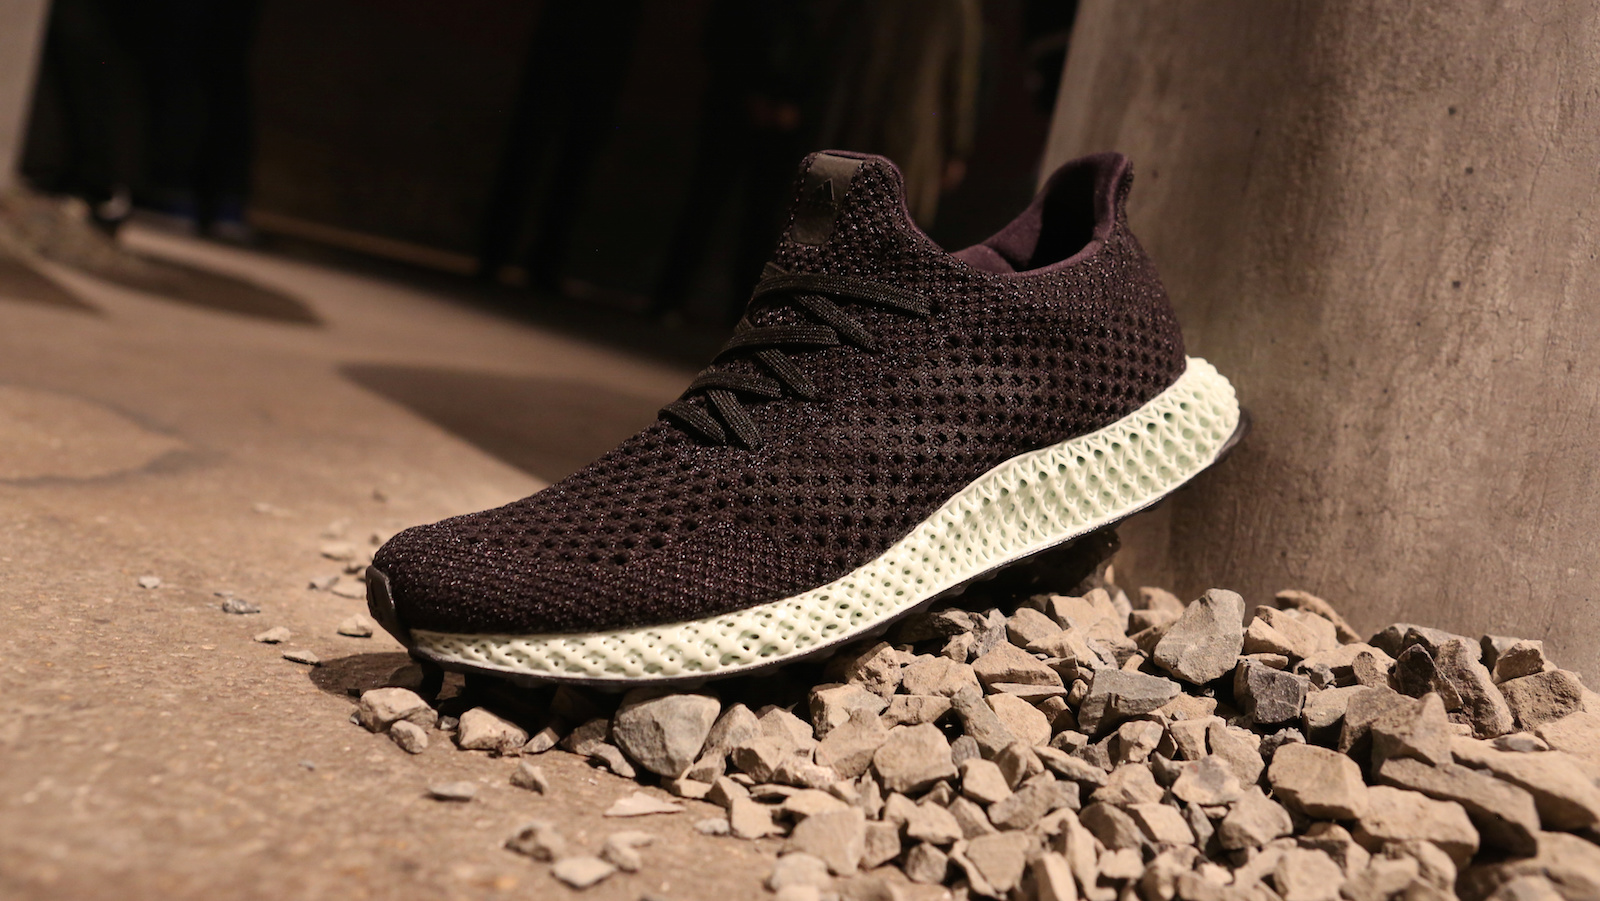 87f04447e Adidas is kicking off the era of 3D-printed sneaker production with the Futurecraft  4D